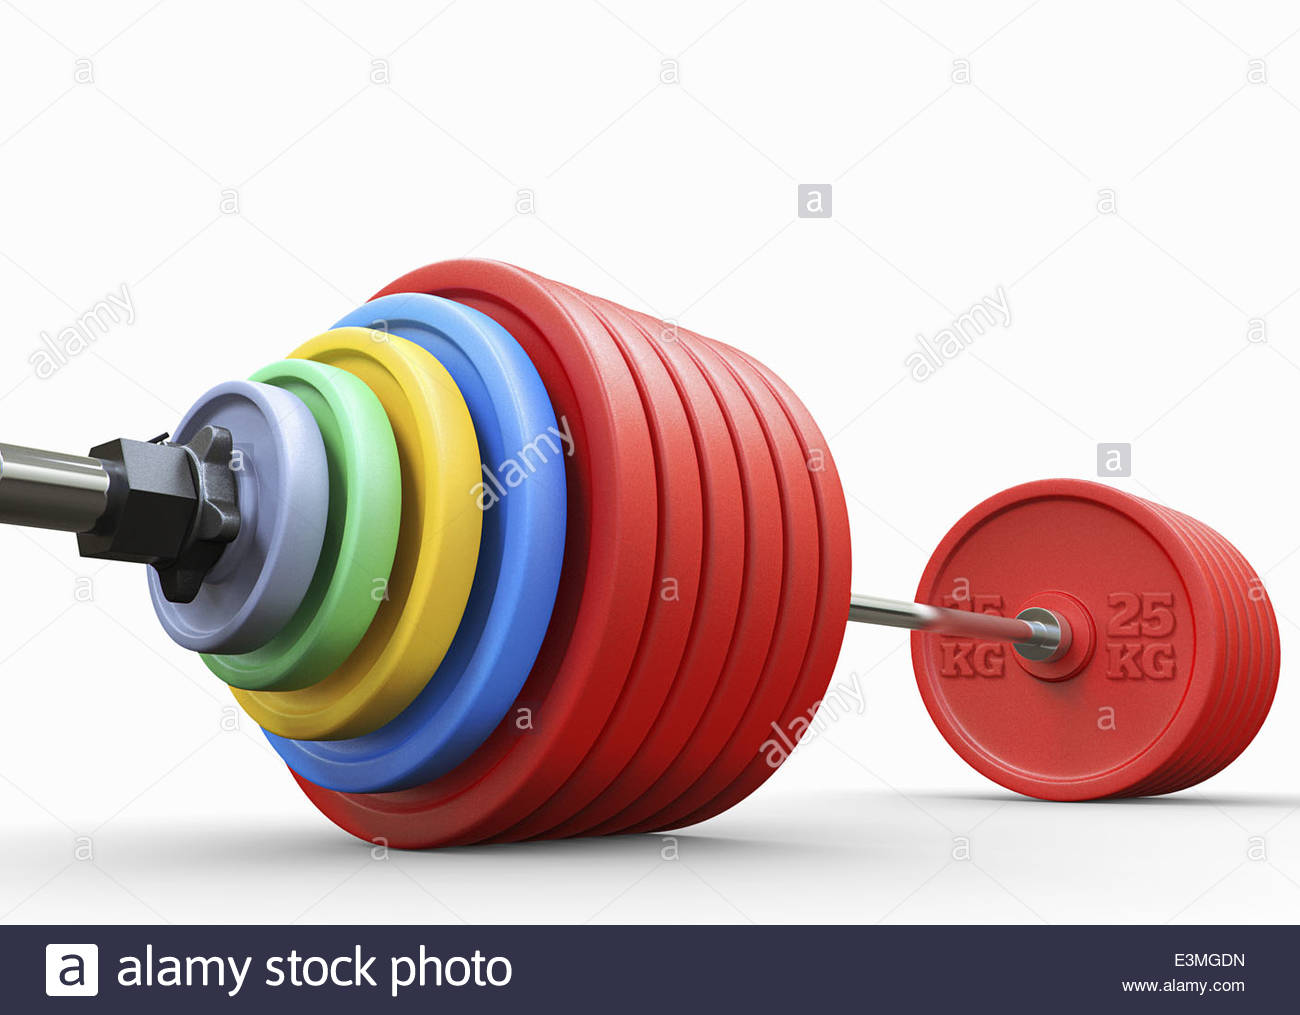 Lots of weights on heavy barbell - Stock Image